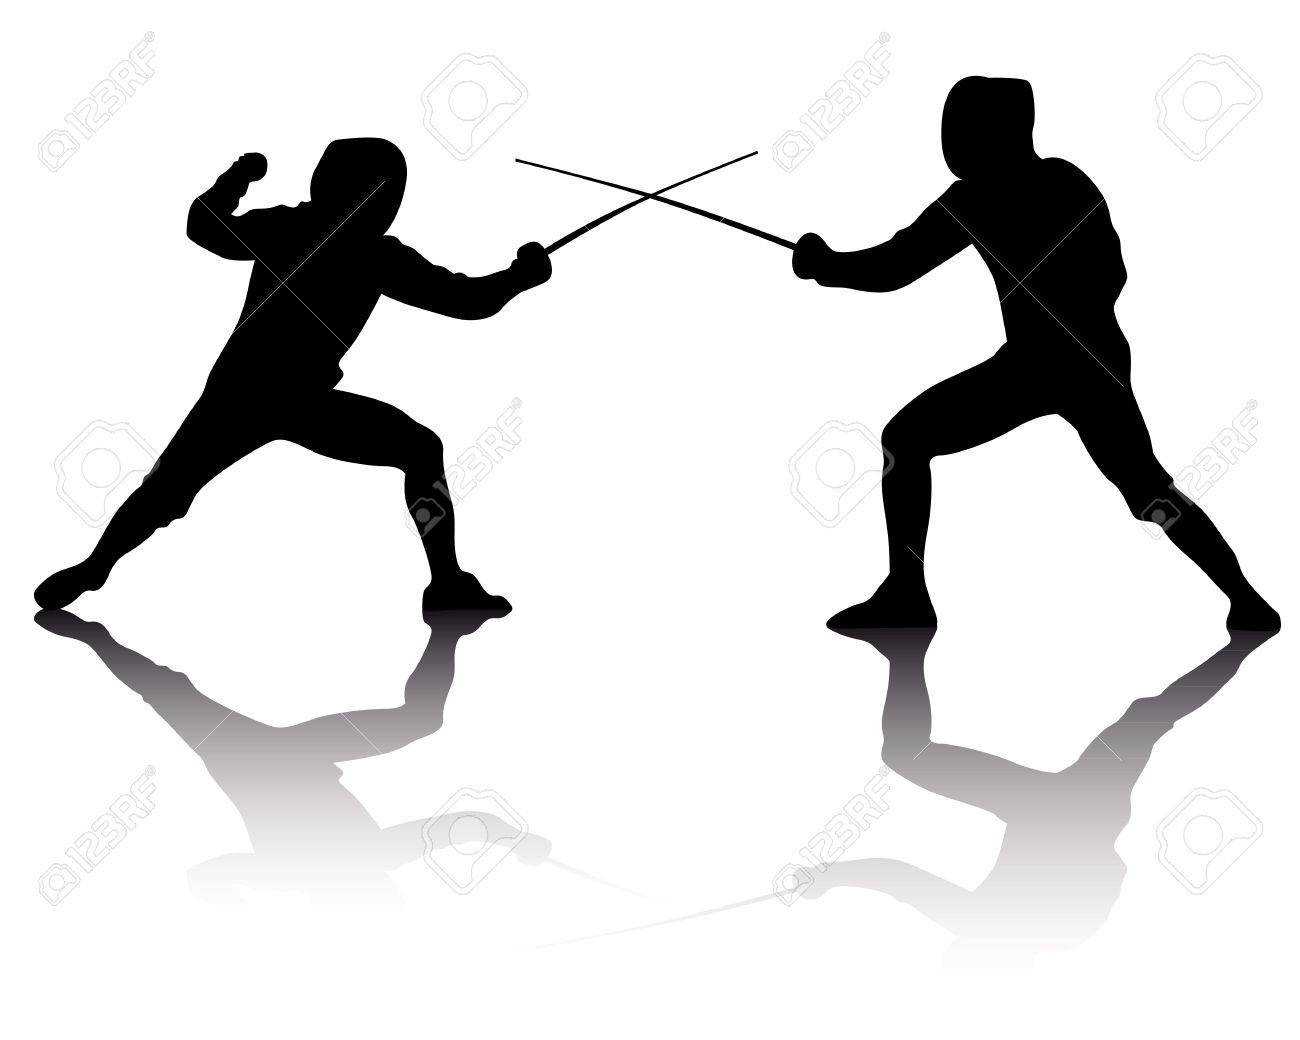 Black Silhouettes Of Athletes Fencers On A White Background.